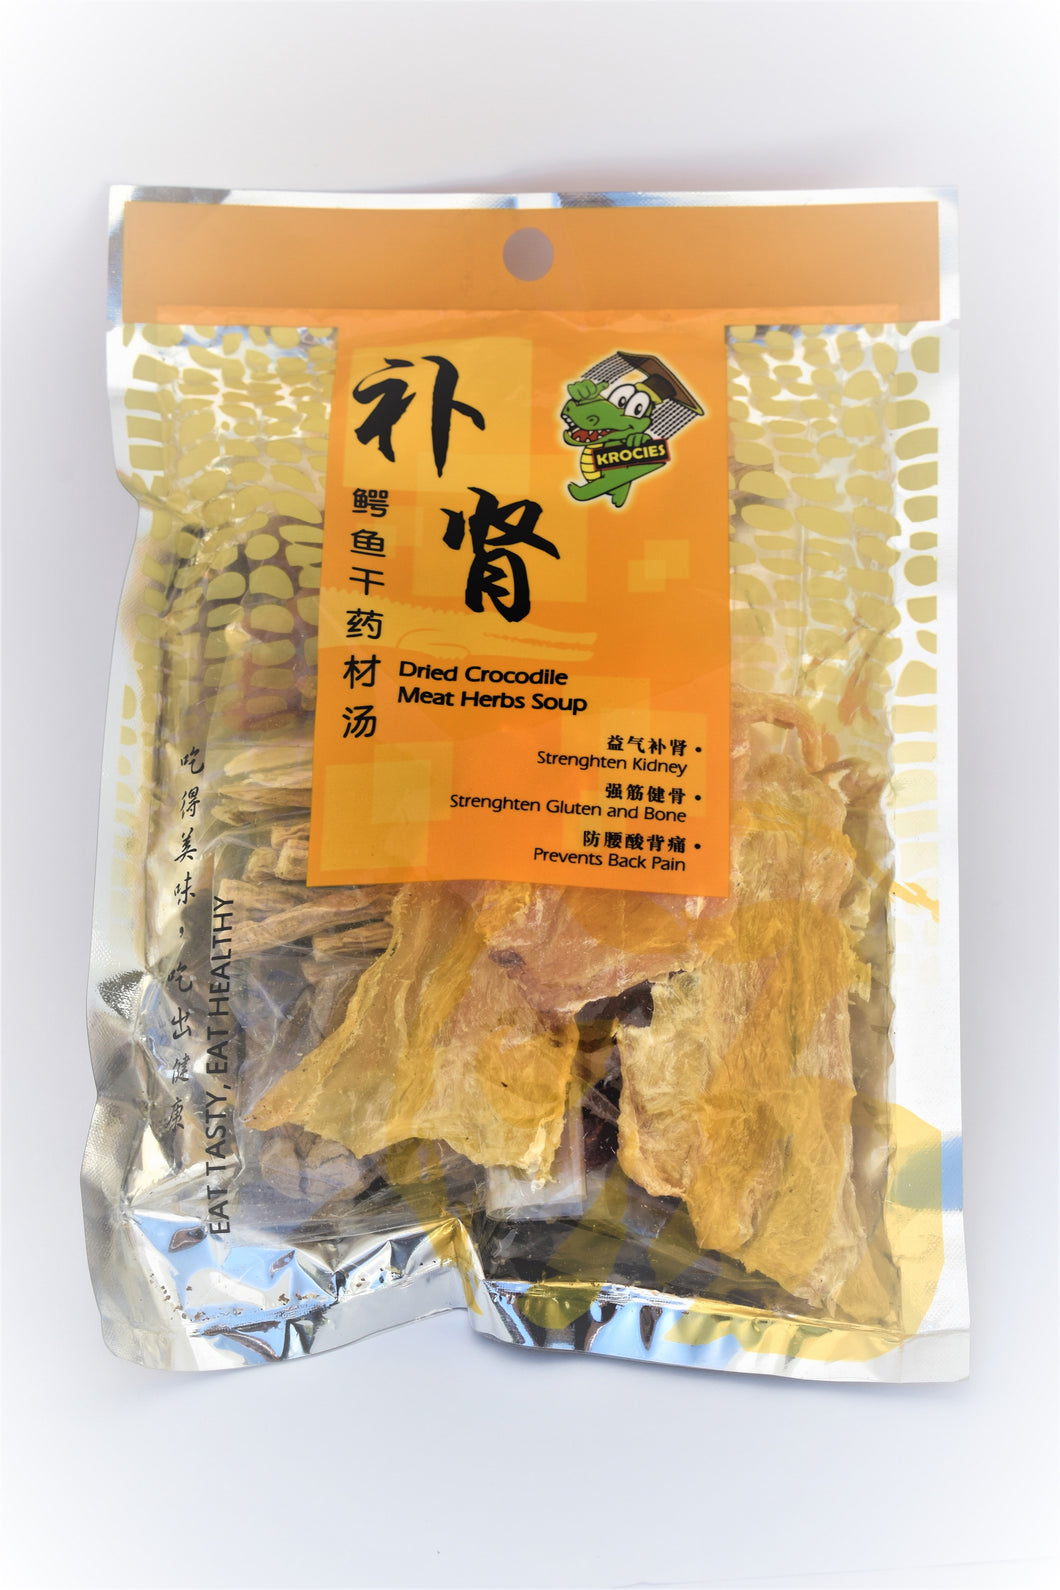 Bu Shen Dried Crocodile Meat Herbs Soup - Protect your Liver/Kidney